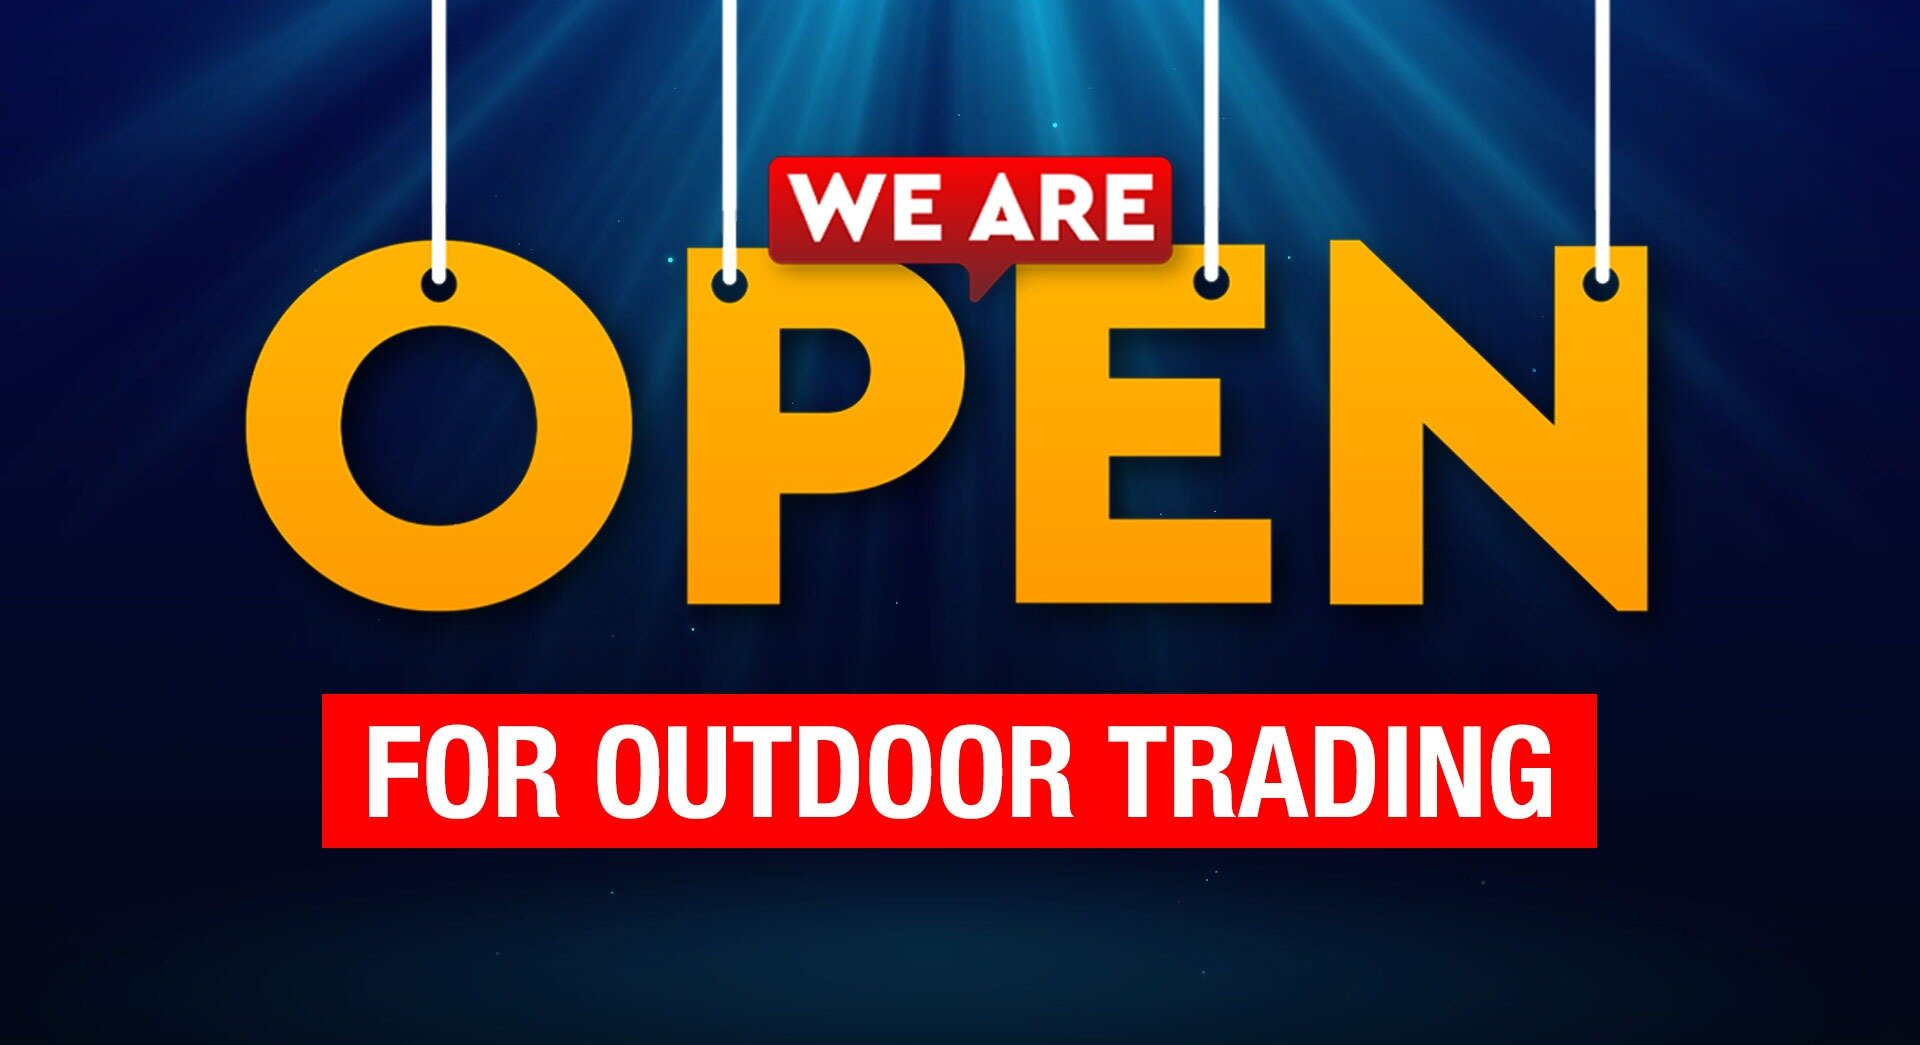 We are Open for Outdoor Trading